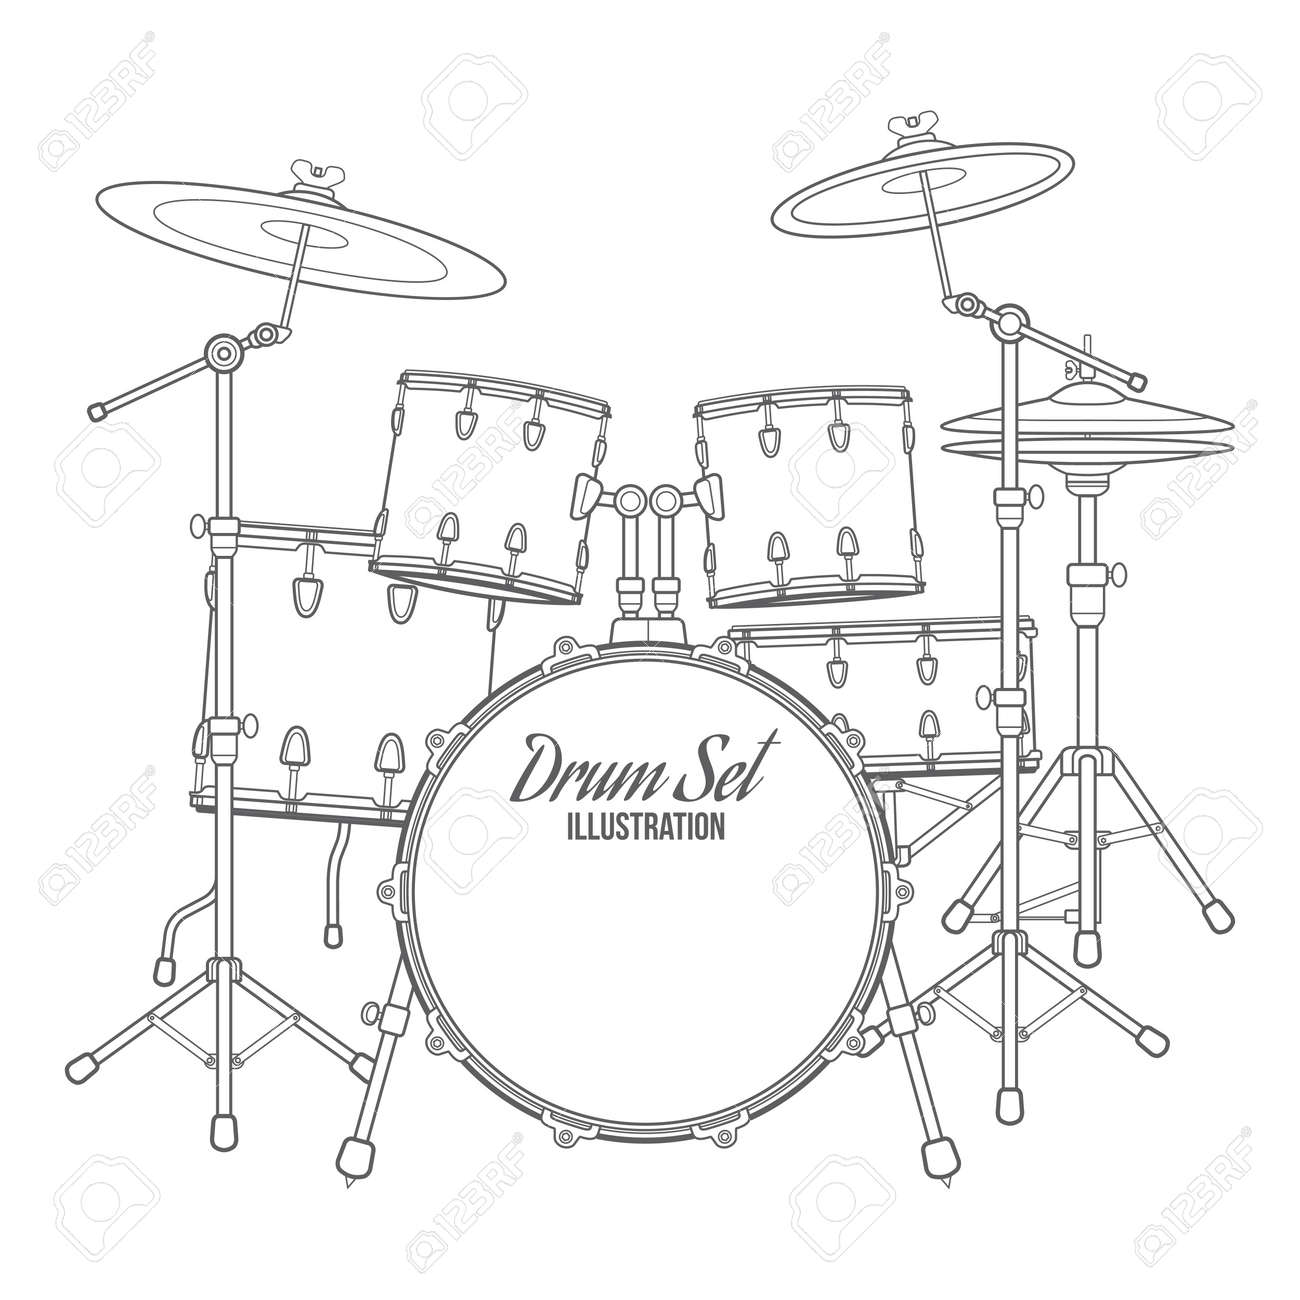 Drum Set Outline Vector Dark Outline Drum Set